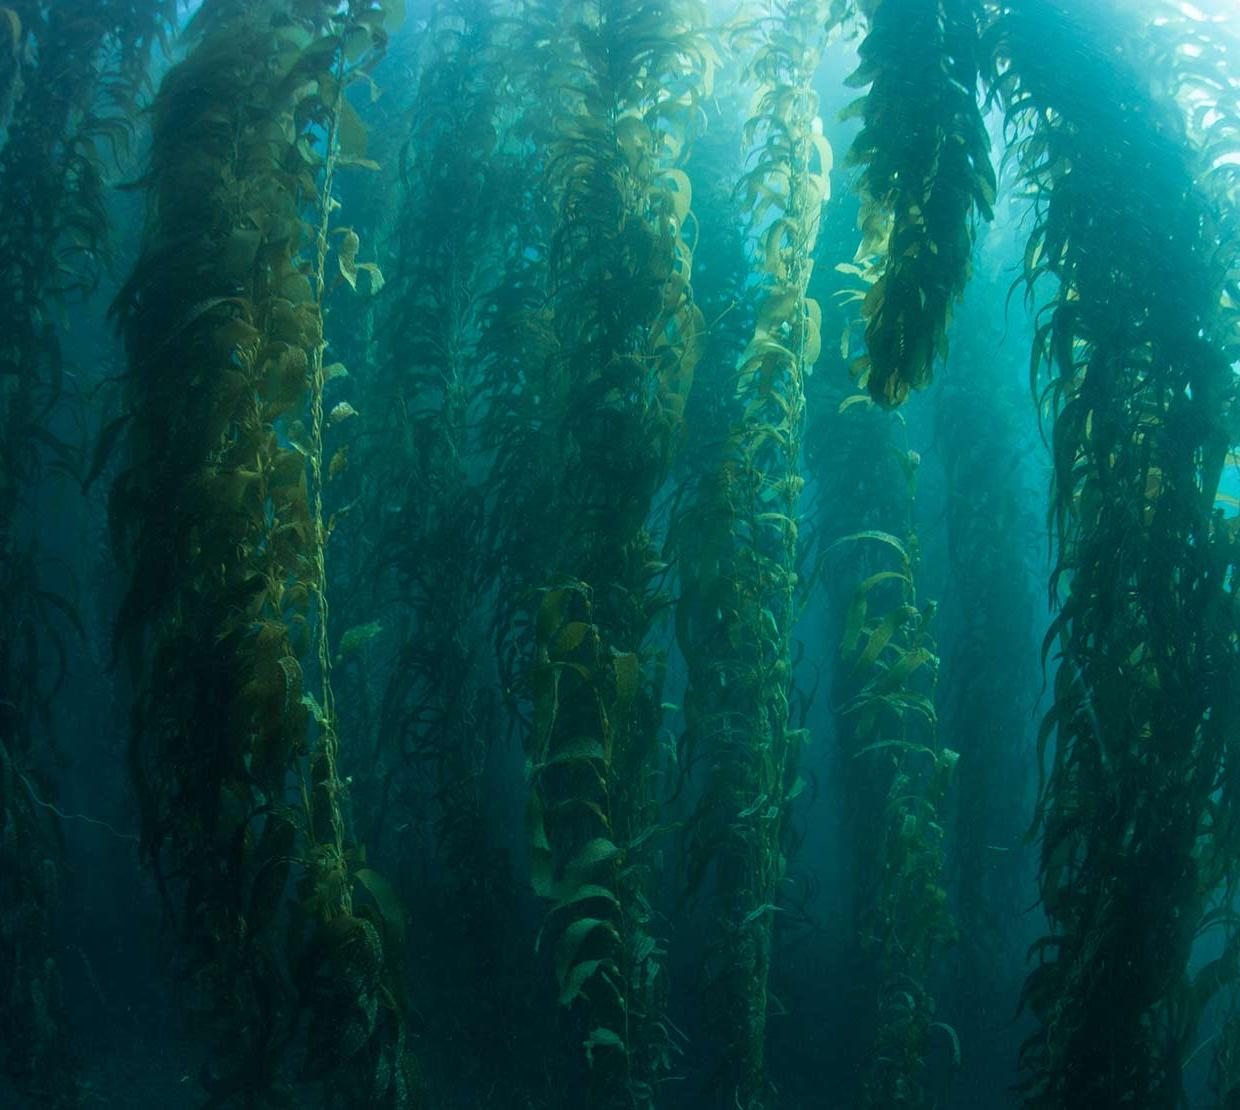 Long branches of seaweed in ocean